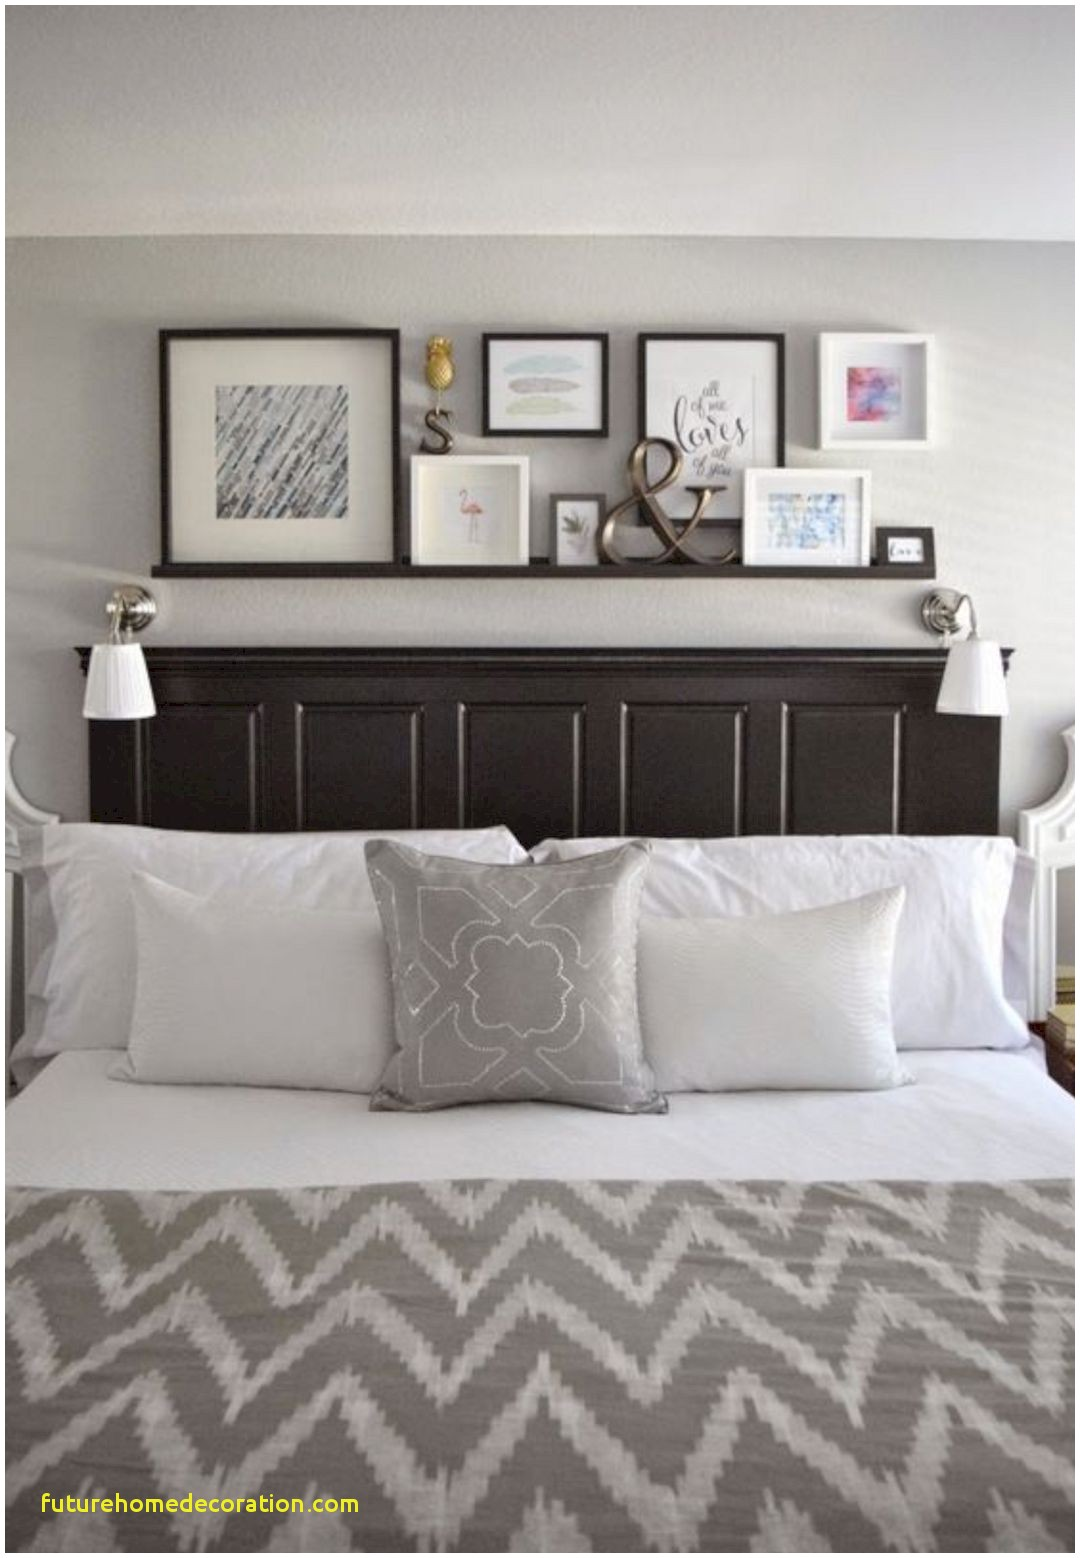 Trends of Bedroom Decor Ideas Guide This Year @house2homegoods.net